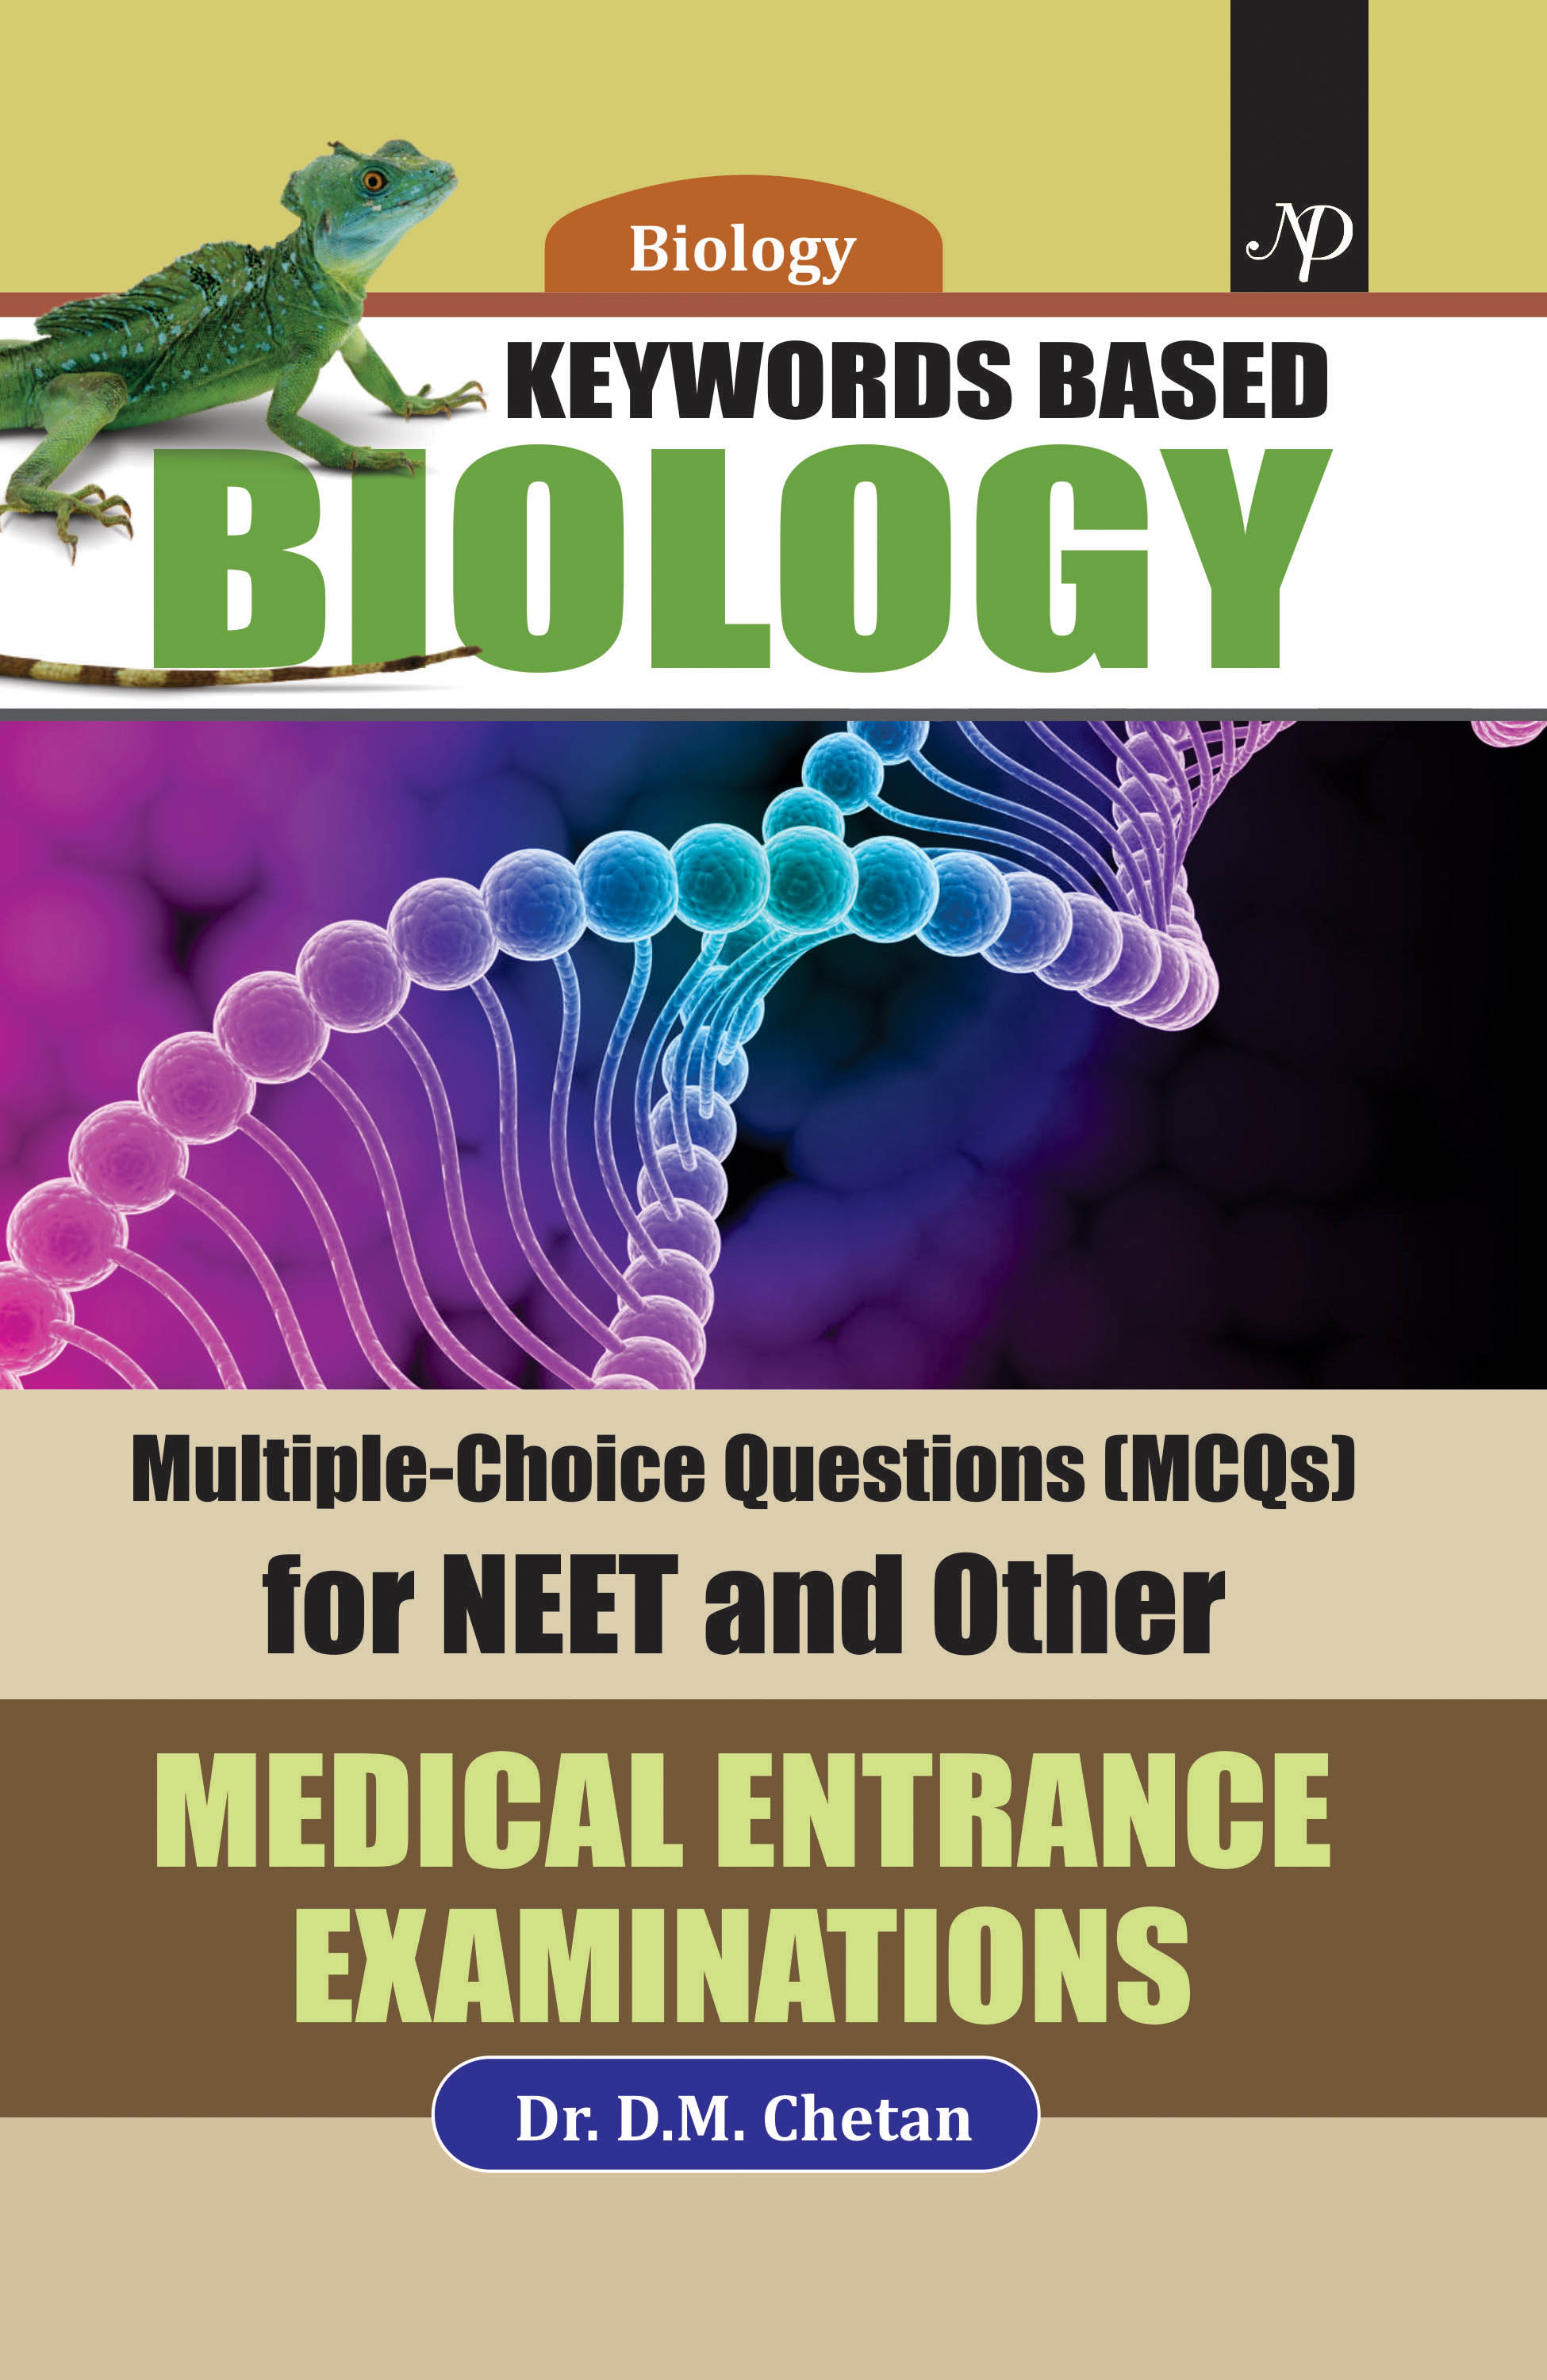 Keywords Based Biology: Multiple-Choice Questions for NEET and Other